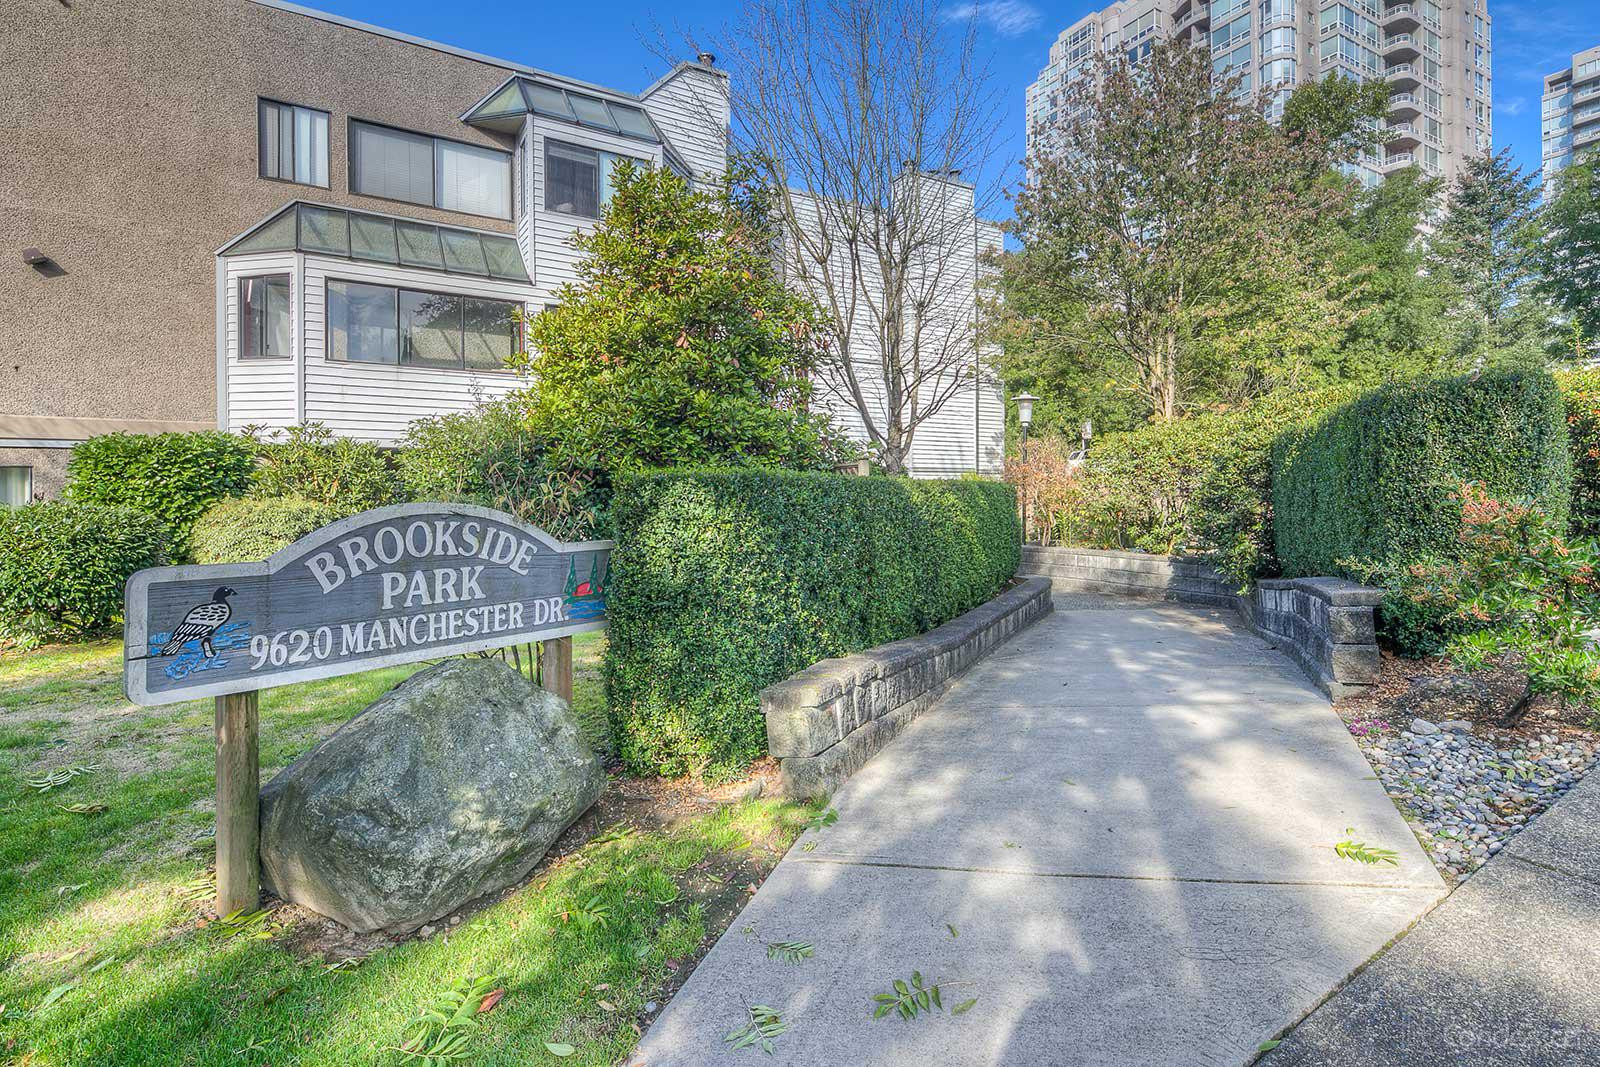 Brookside Park at 9620 Manchester Dr, Burnaby 0